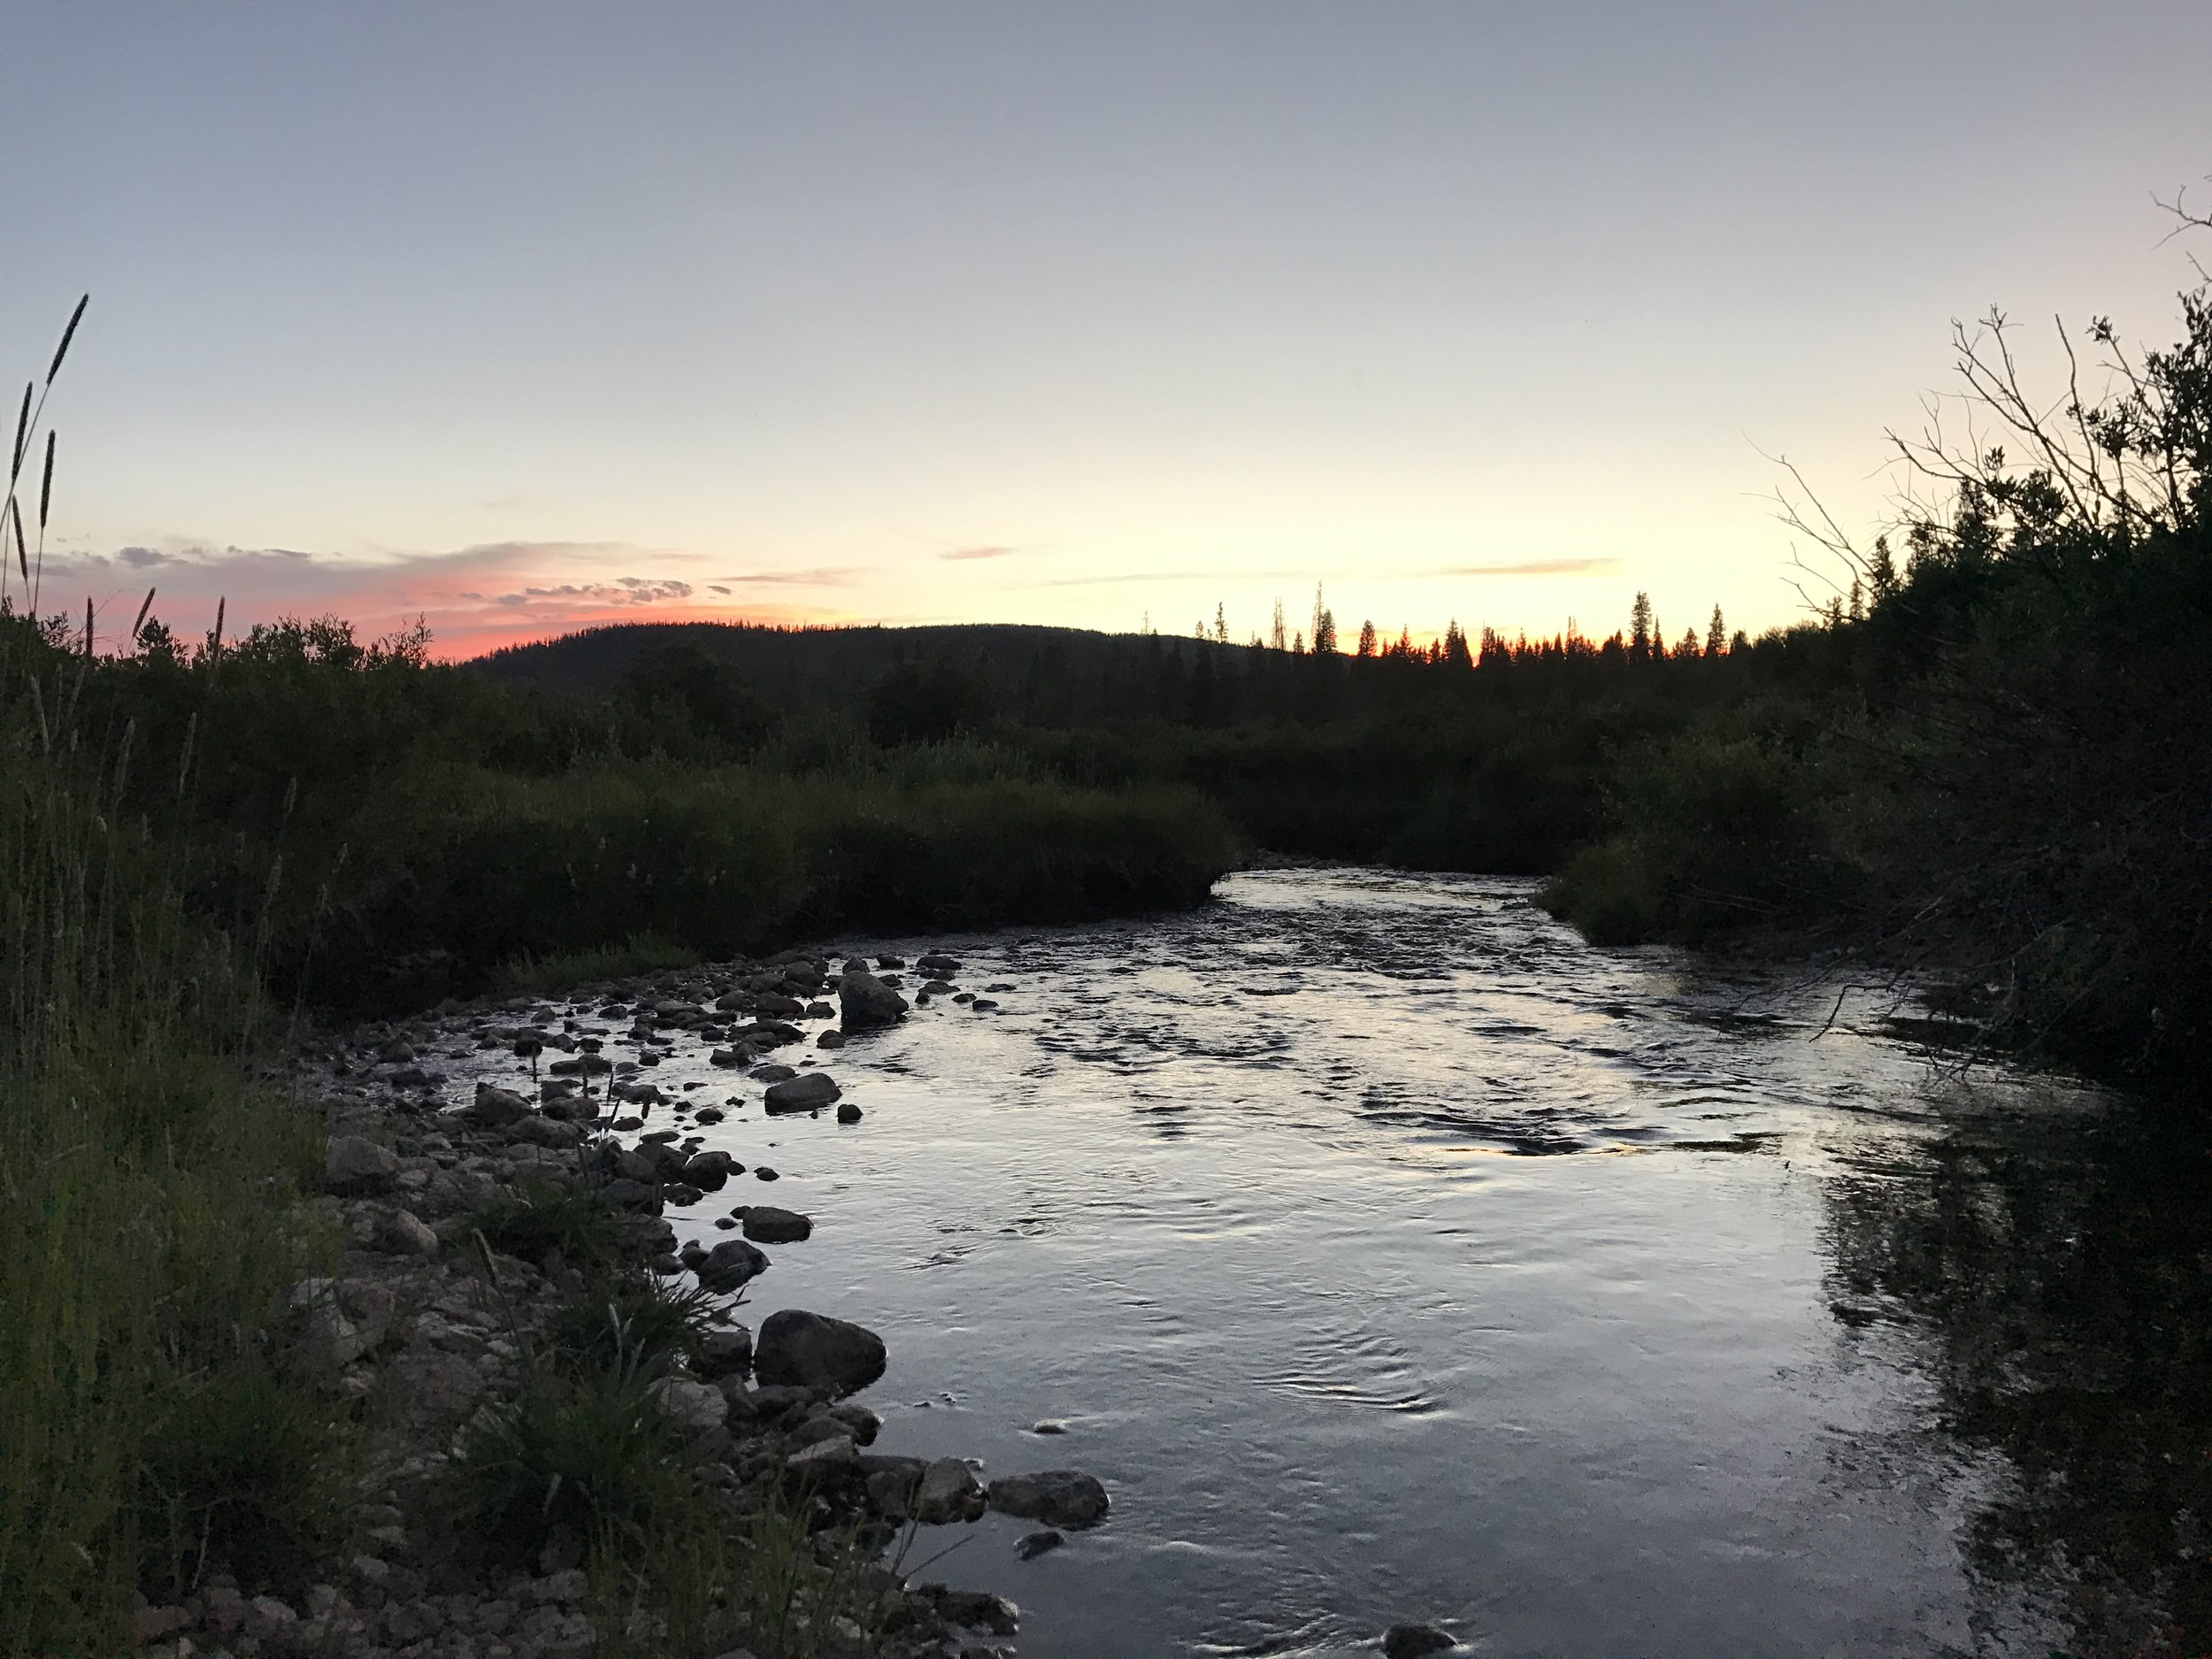 Sunset on an amazing day at the 2017 Never Summer 100K, Cameron Pass, CO. Many runners started at dawn and continued to run well into the next day.